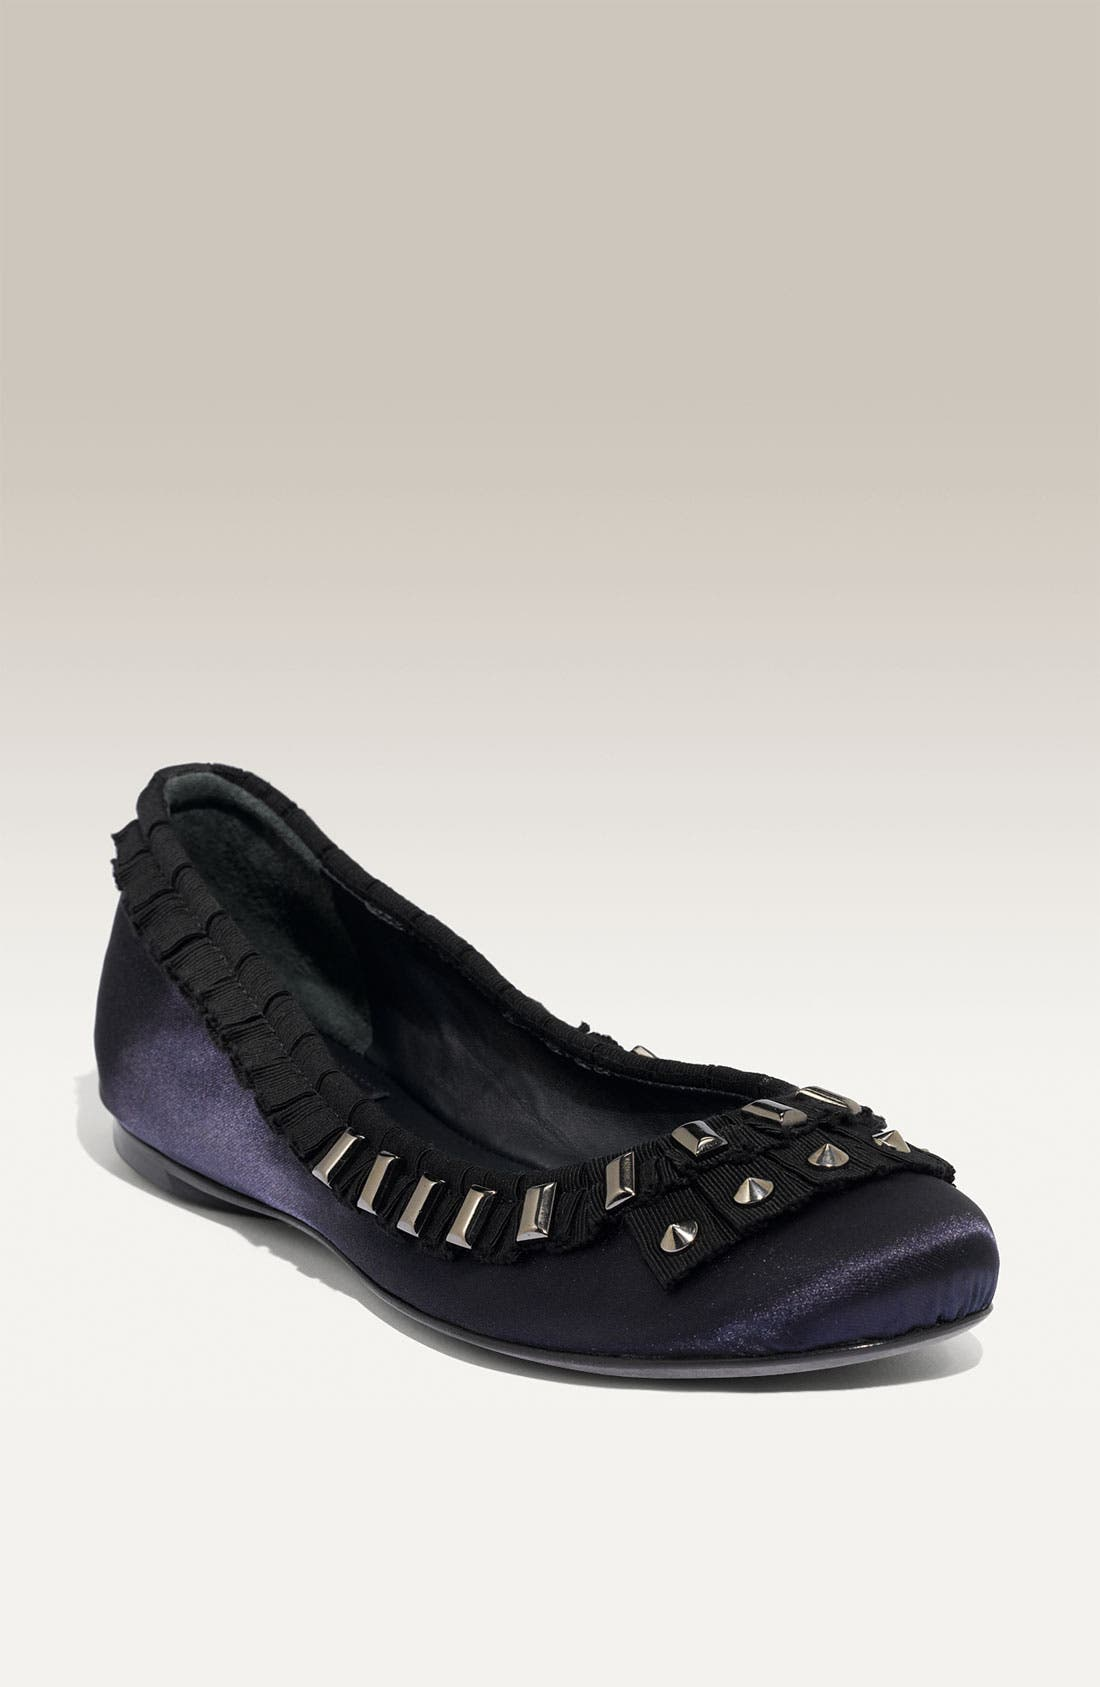 Alternate Image 1 Selected - Tory Burch 'Courtney' Satin Flat